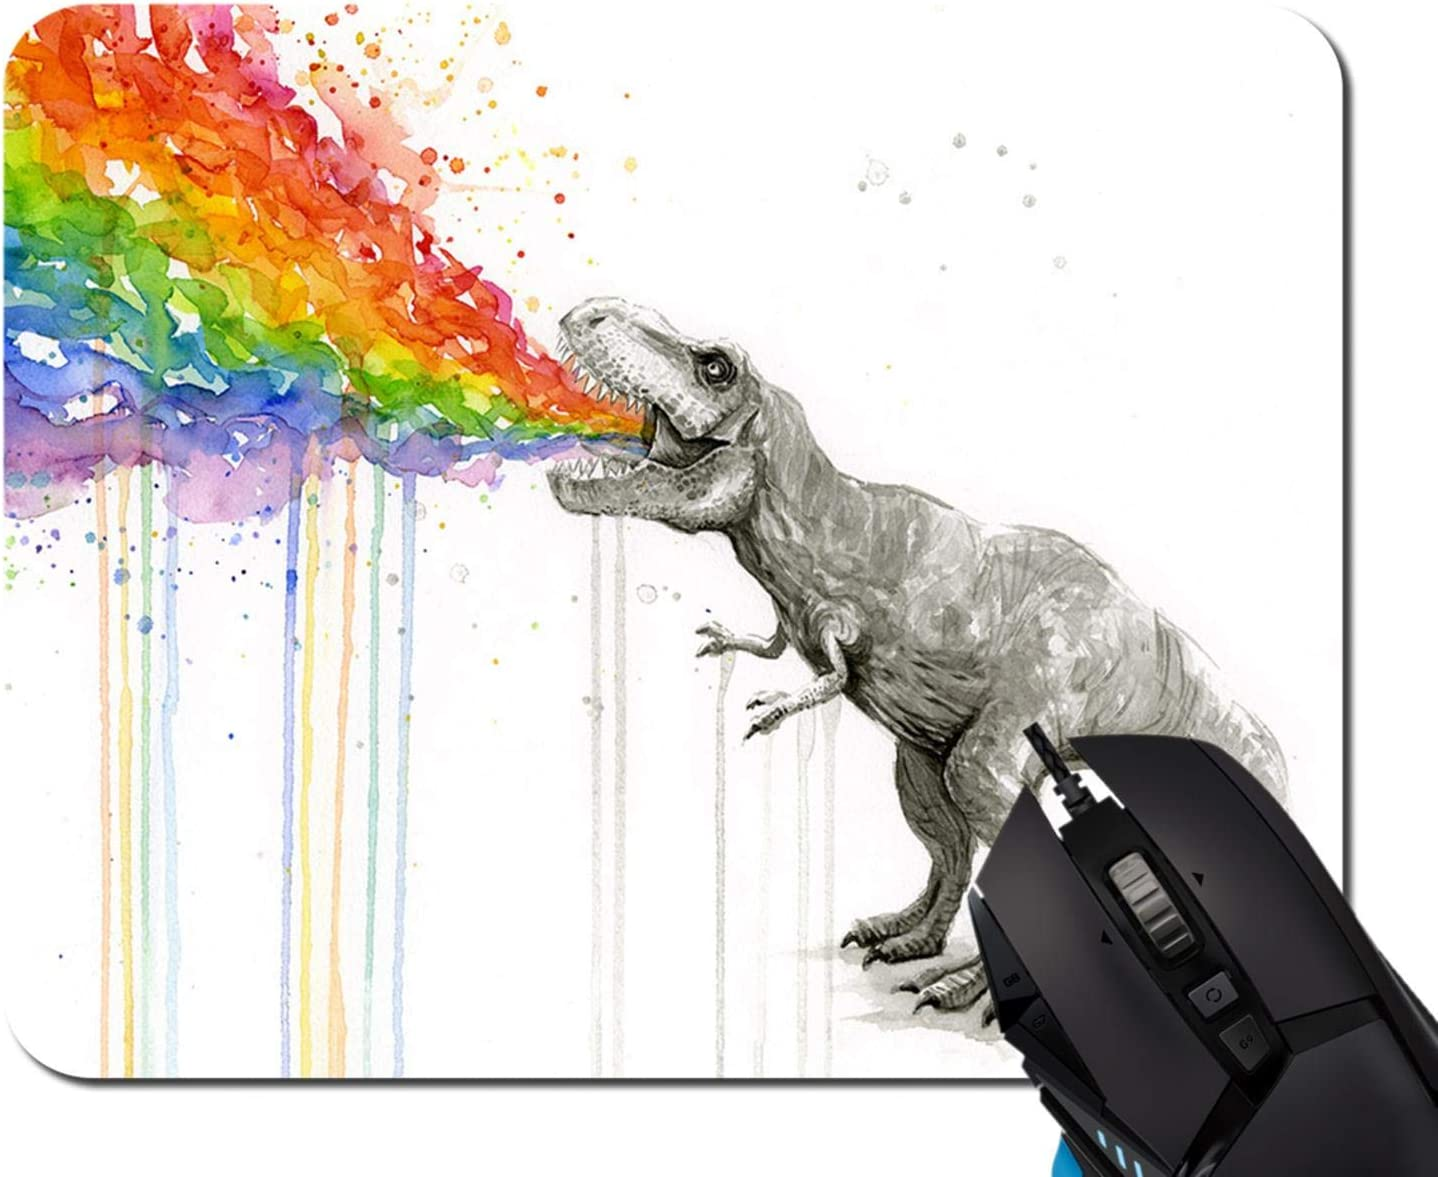 Mouse Pad,Watercolor Dinosaur Spray Rainbow Mouse Pad Rectangle Non-Slip Rubber Mousepad Office Accessories Desk Decor Mouse Pads for Computers Laptop